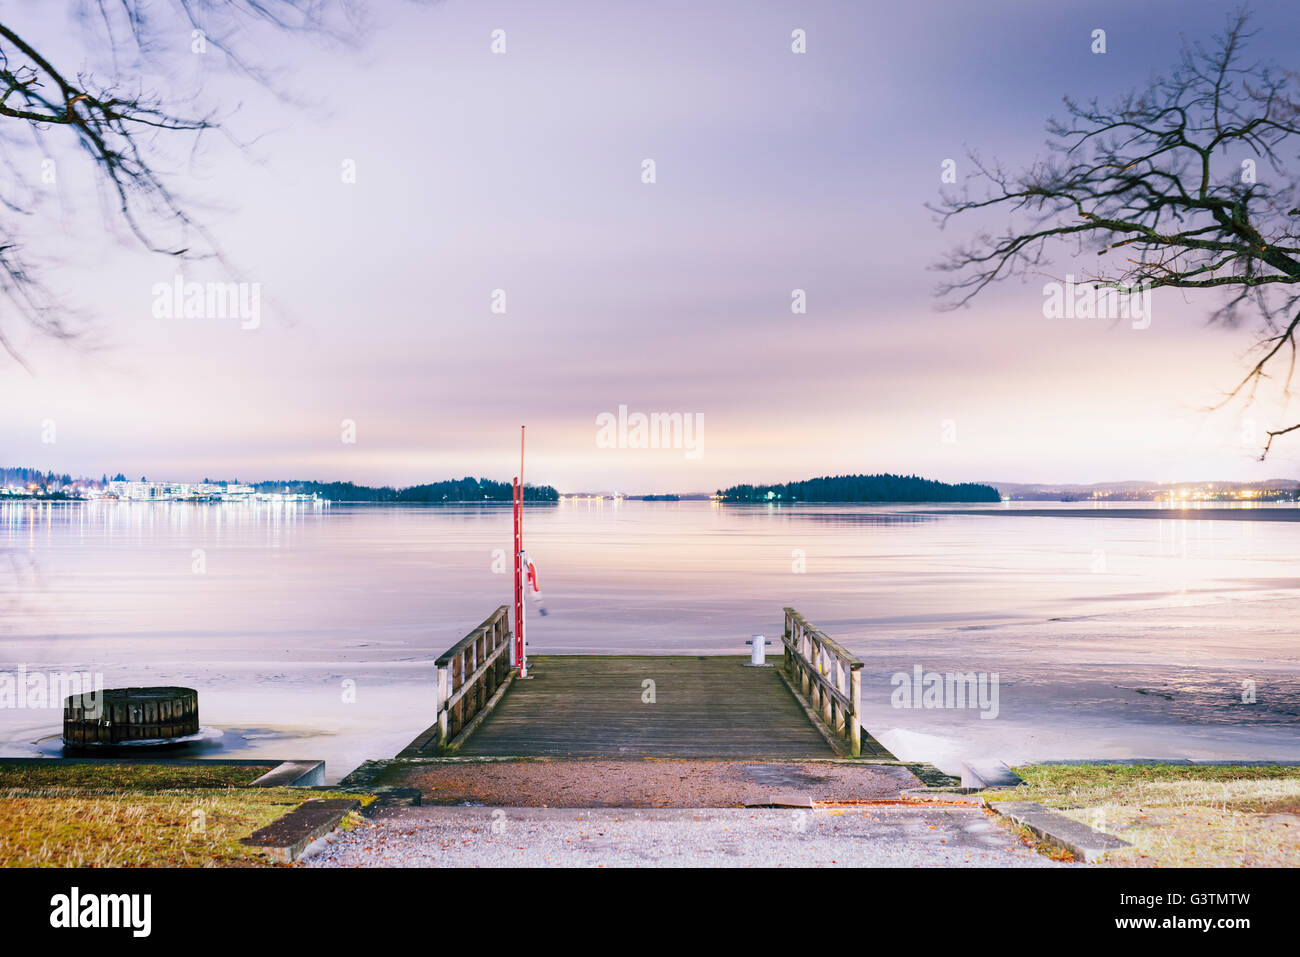 Finland, Pirkanmaa, Tampere, Pyhajarvi, Wooden jetty over lake at dusk - Stock Image